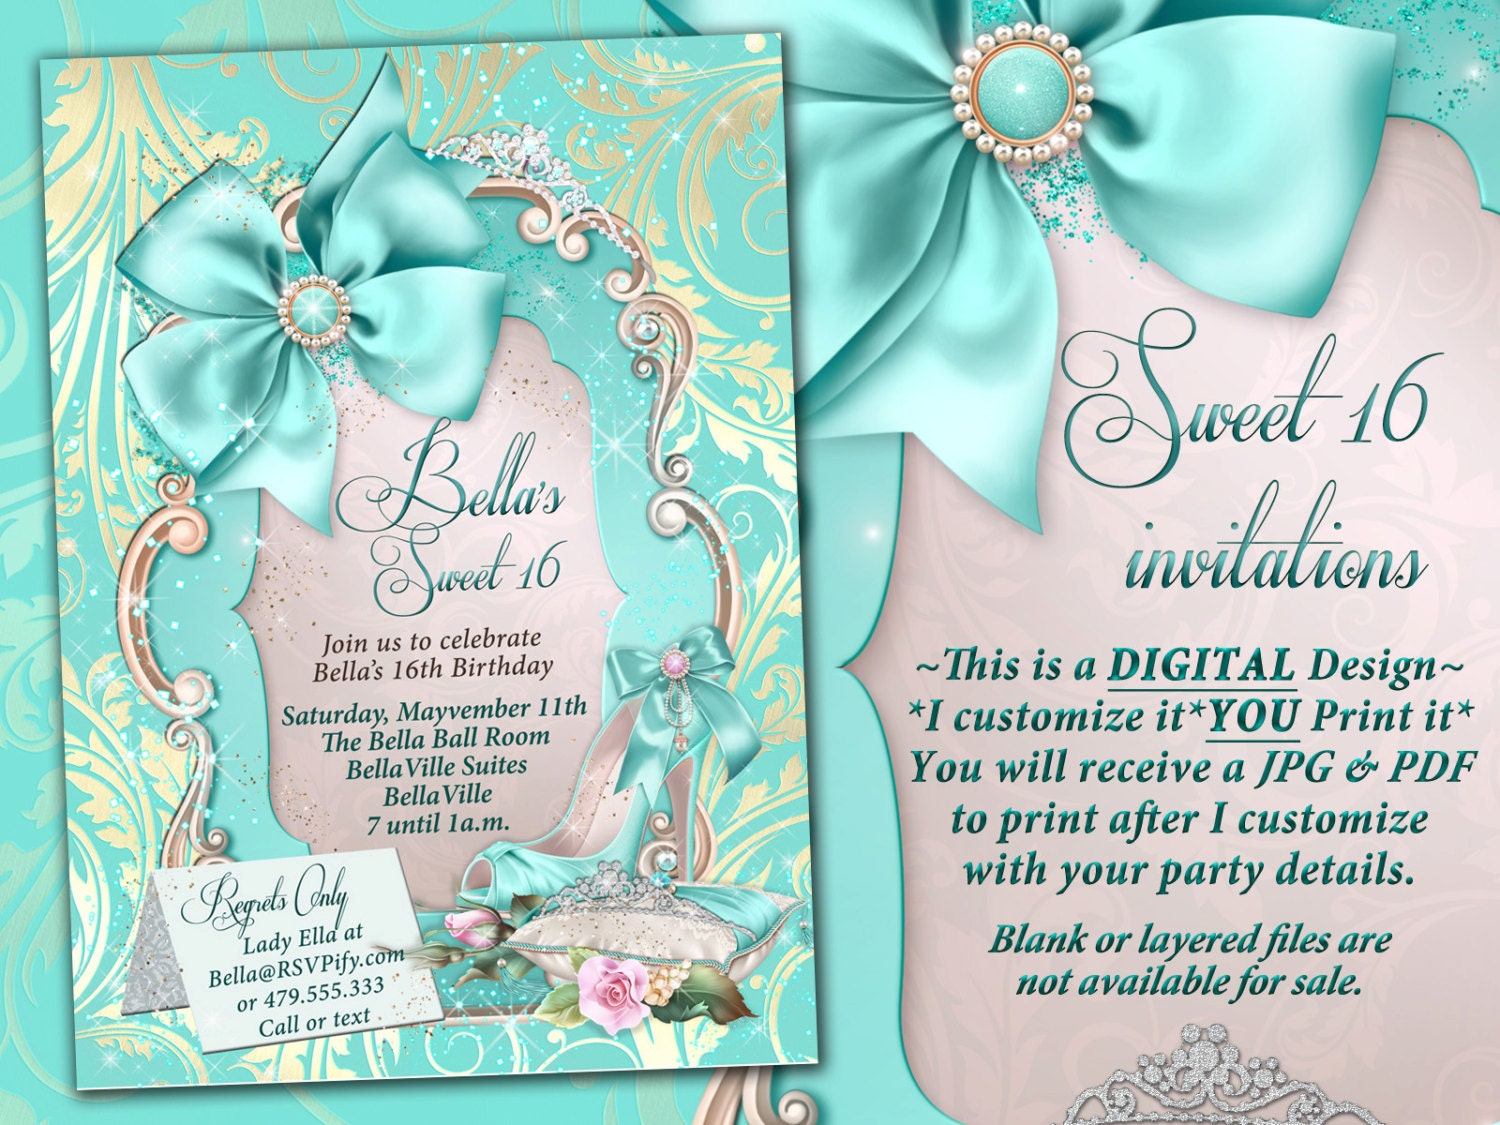 Sweet 16 Invitations Quinceanera Mis Quince Anos Birthday